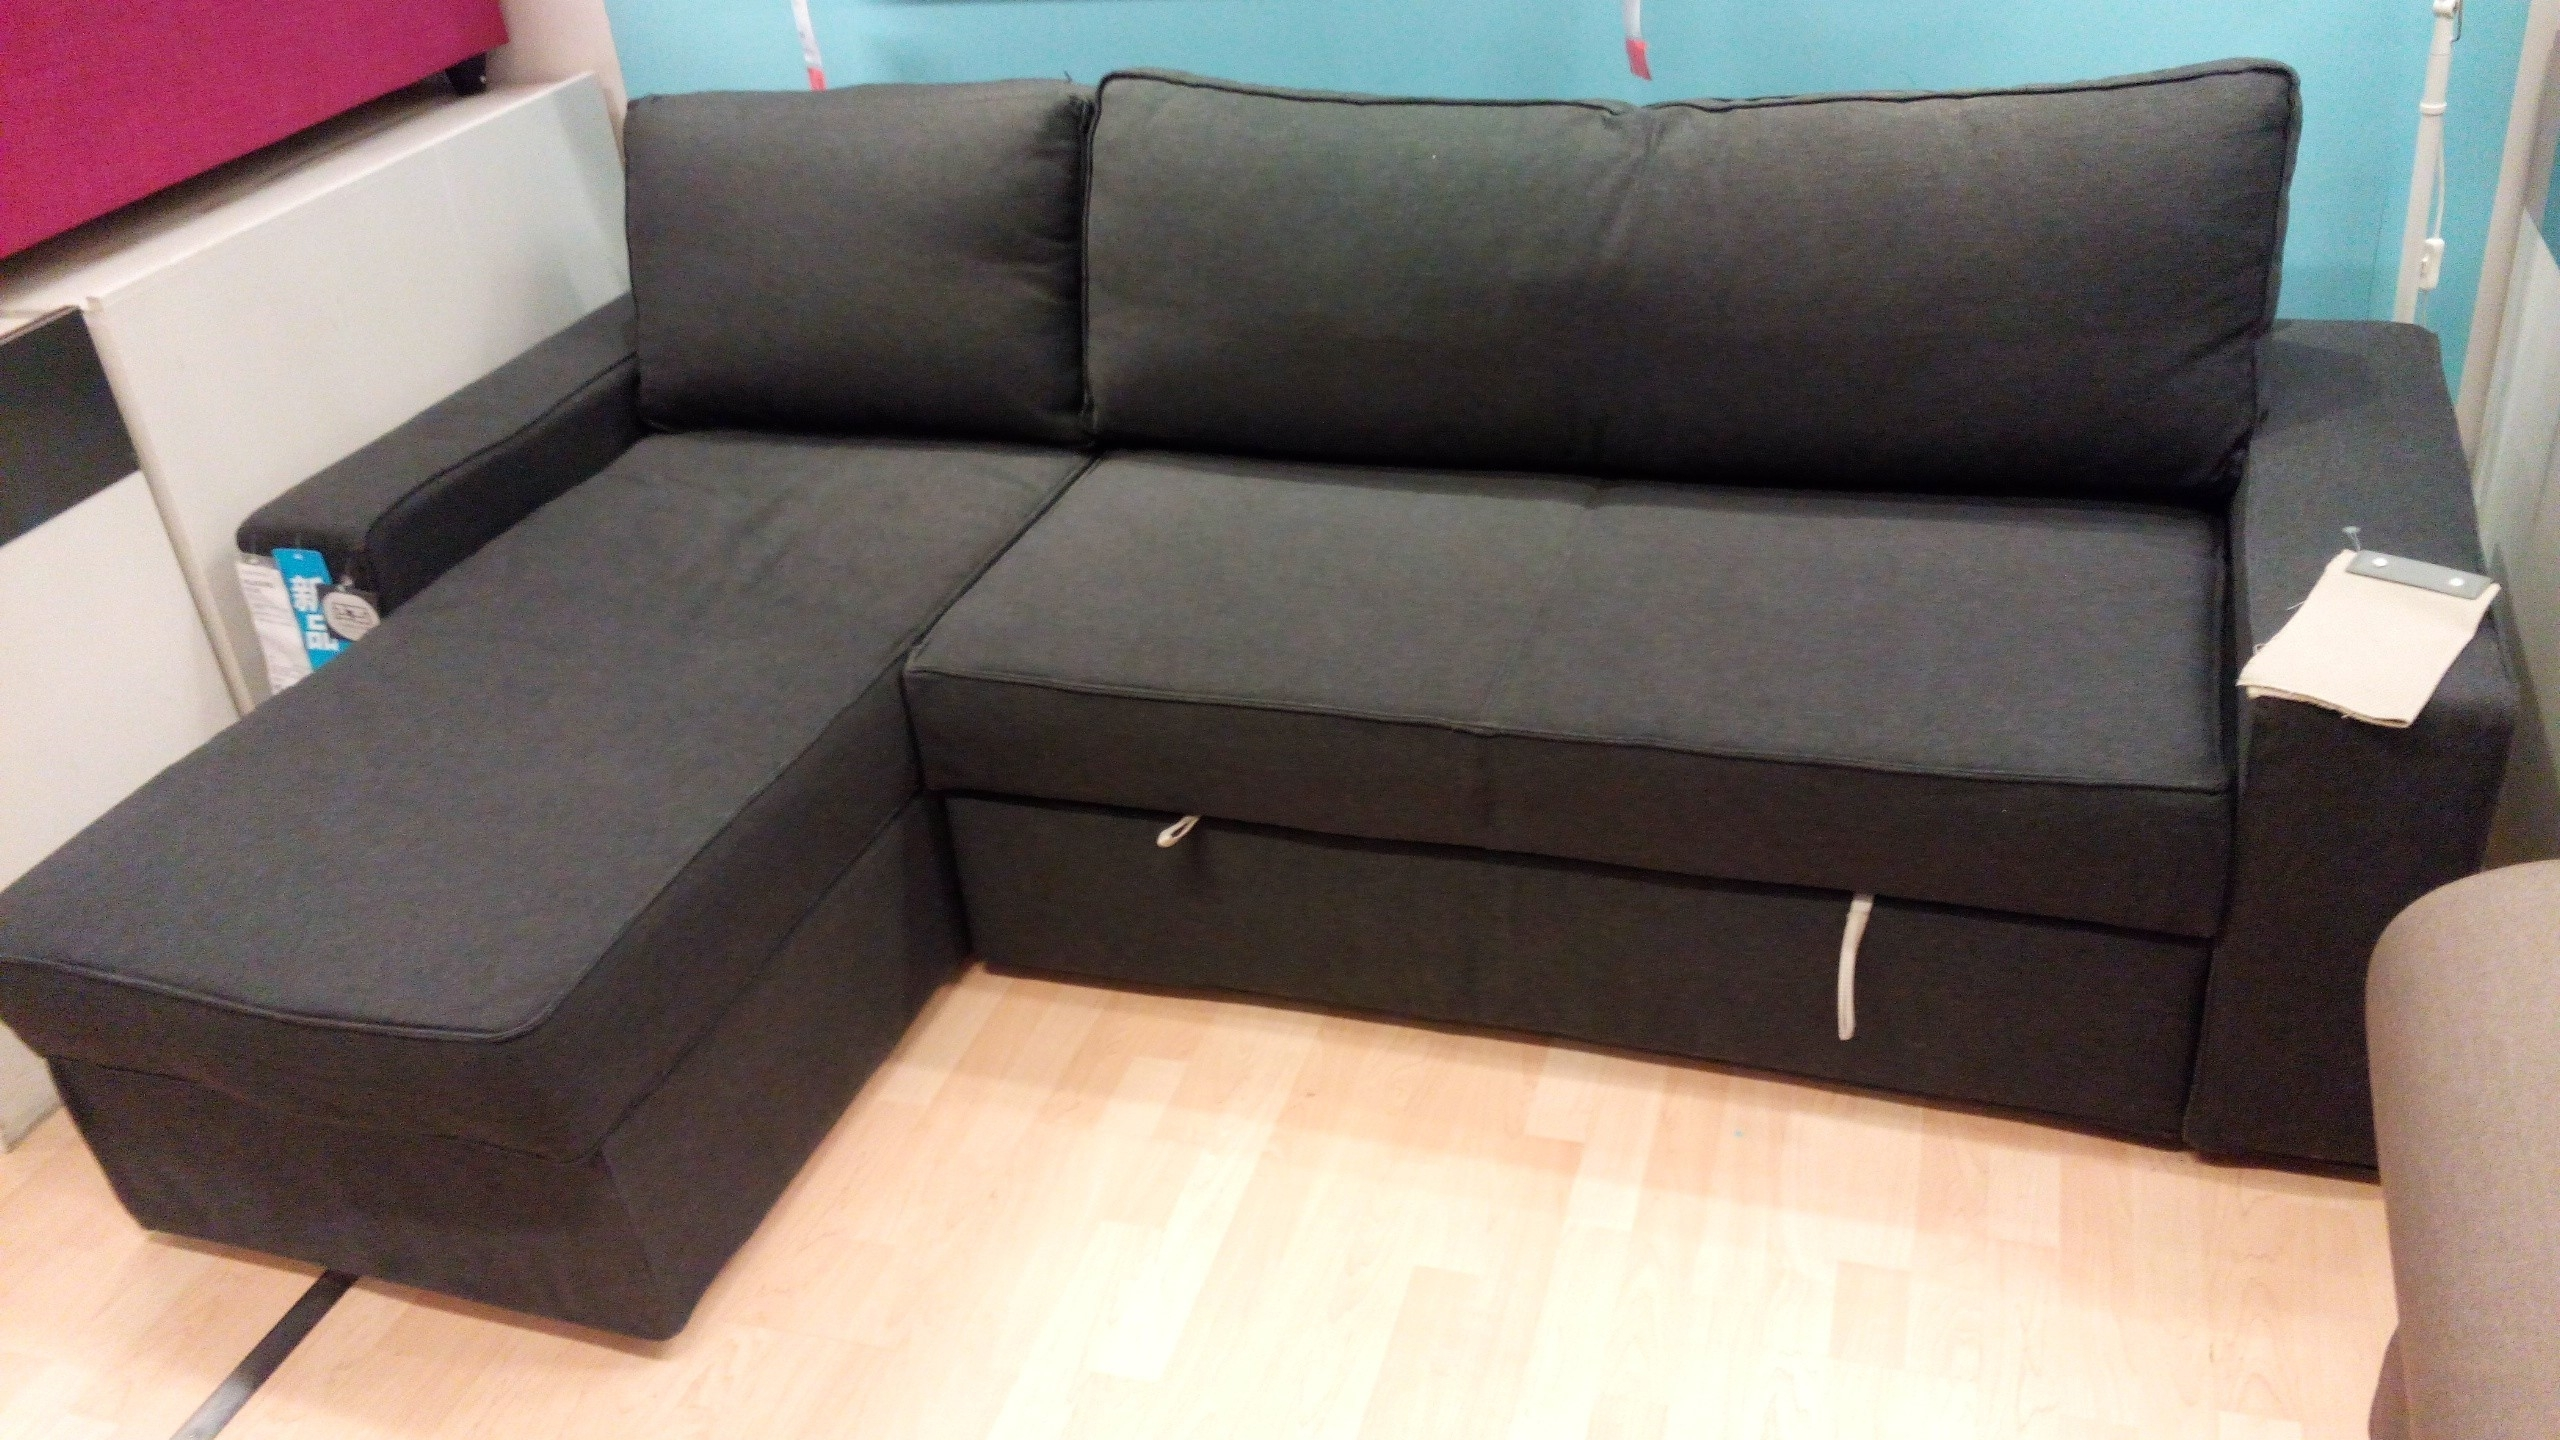 Living Room And Furniture. Finding Sectional Sofa And Couch with Sectional Sofas at Ikea (Image 6 of 15)